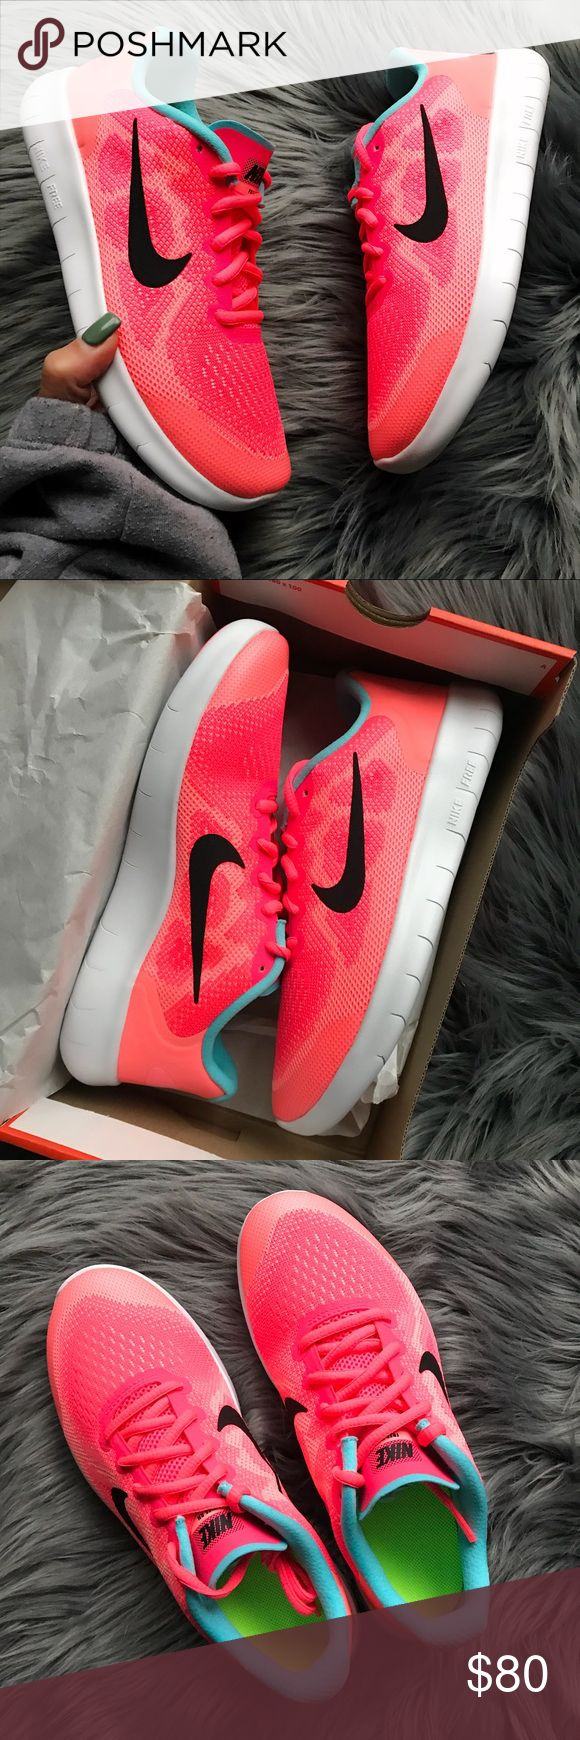 NWB  NIKE FREE RN FITS SIZE 7 WOMEN BRAND NEW, NIKE FREE! Cute, cozy & comfy NIKES ...COLOR: LAVA GLOW & RACER PINK FULL ORIGINAL BOX  ORDER YOUR WOMANS SHOE SIZE  5.5y = 7 WOMEN  ALL SIZES LISTED ACCORDING TO NIKE'S SIZE CHART.   Ships same or next day from my smoke free home.   PRICED FIRM, offers will be considered through the offer button only. Bundle to save.   100% authentic & direct from NIKE Nike Shoes Athletic Shoes